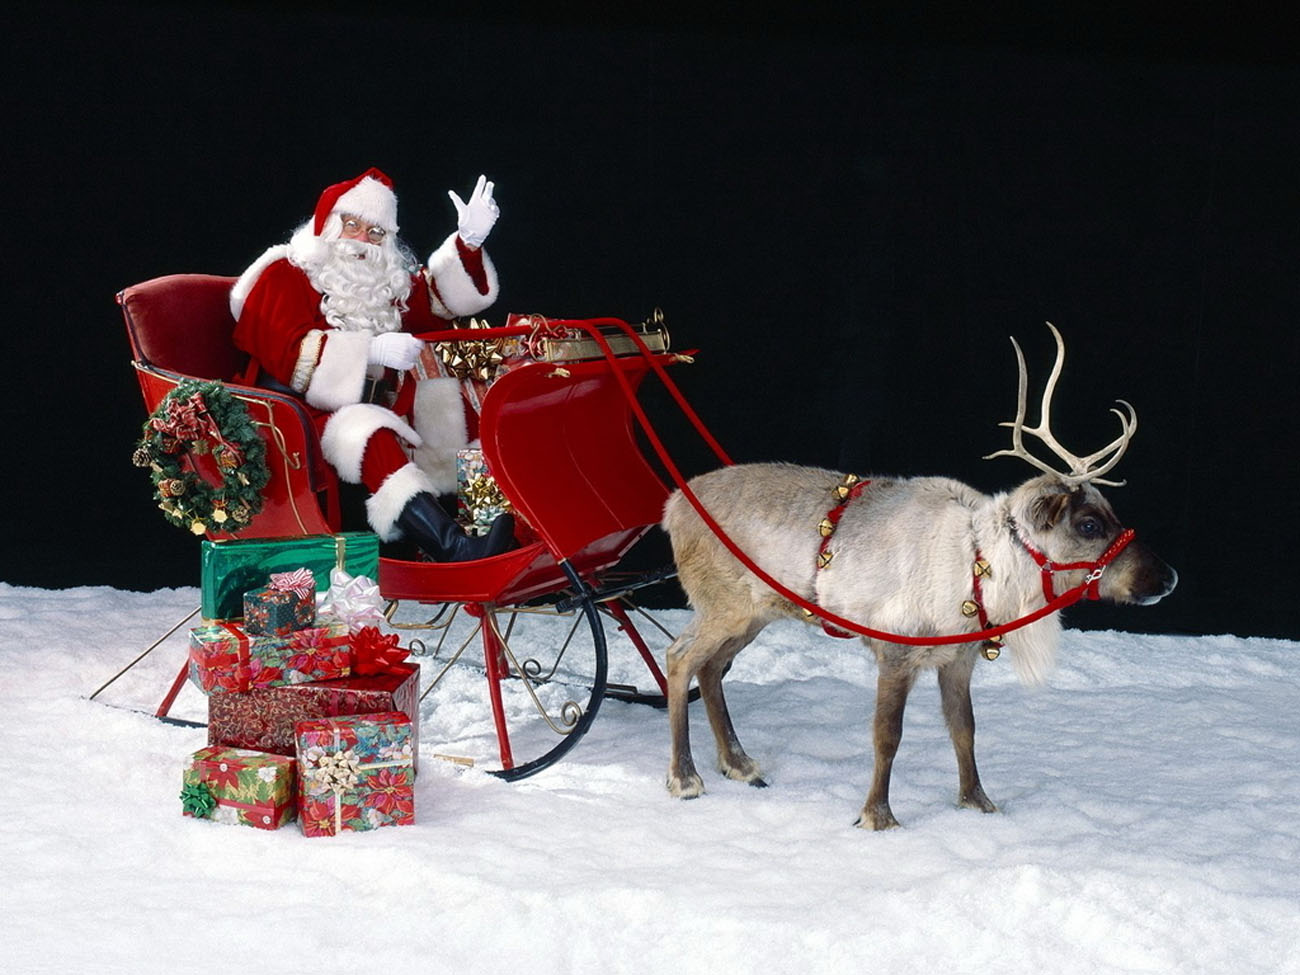 Santa Claus and reindeer 48595